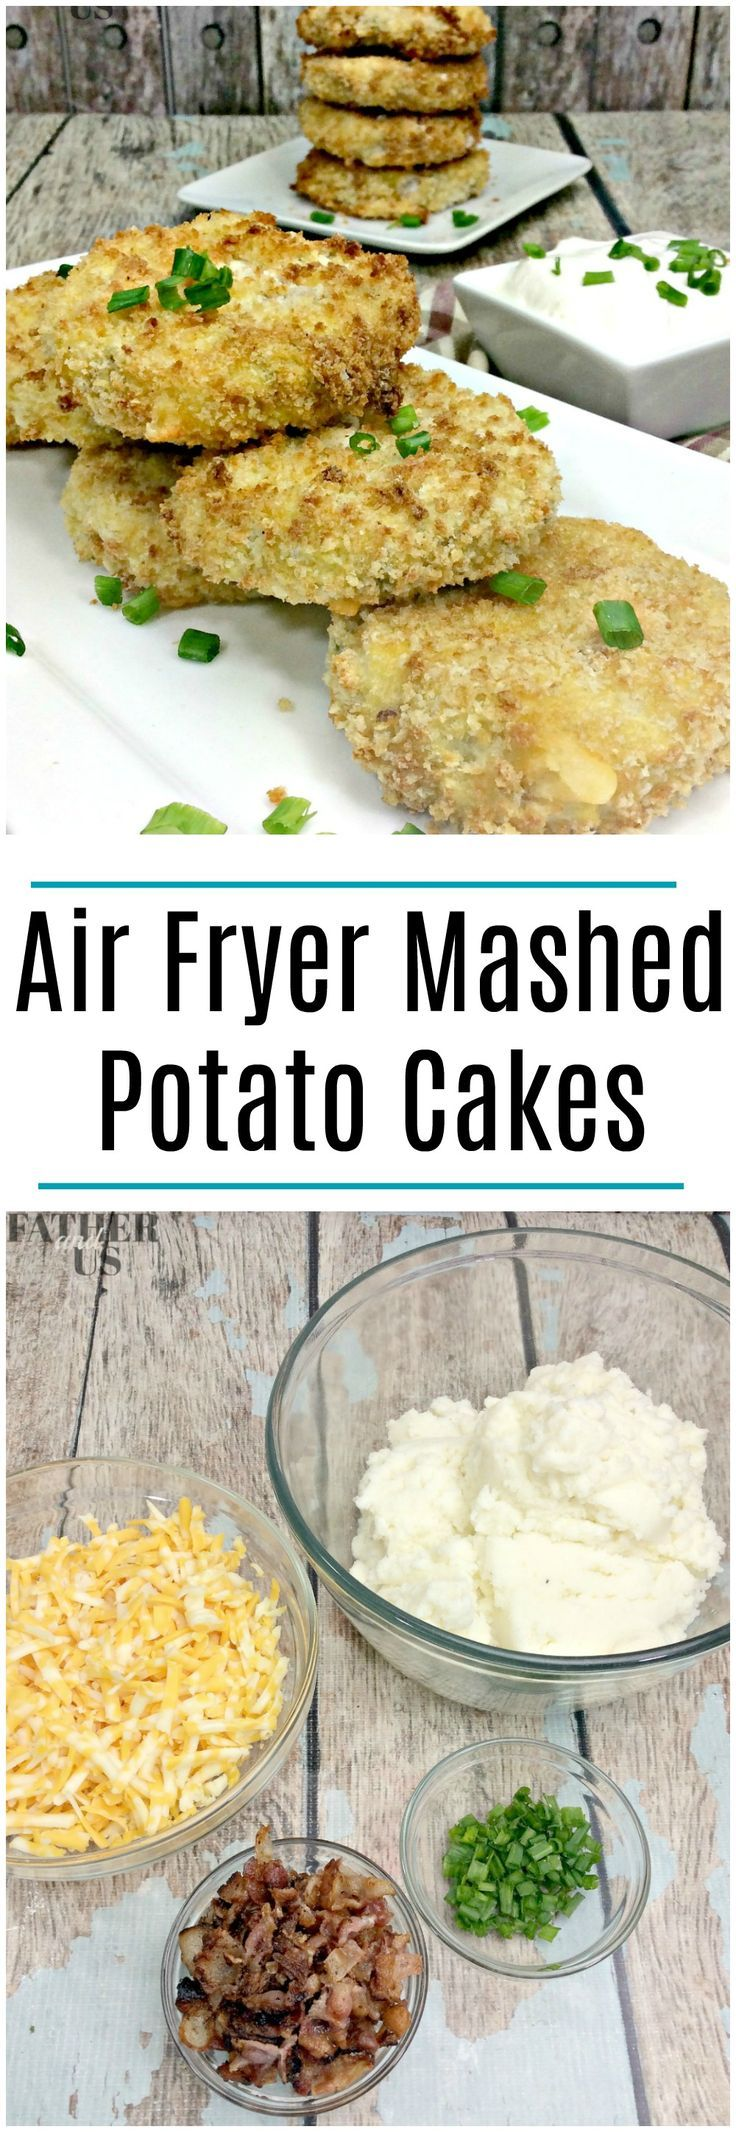 Loaded Mashed Potato Cakes-An Easy Air Fryer Recipe These yummy mashed potato cakes are the perfect appetizer for your next party. They are east to make, easy to eat and look great on an appetizer platter. They are crispy on the outside with a rich, warm potato filling. #airfryer #potatoes